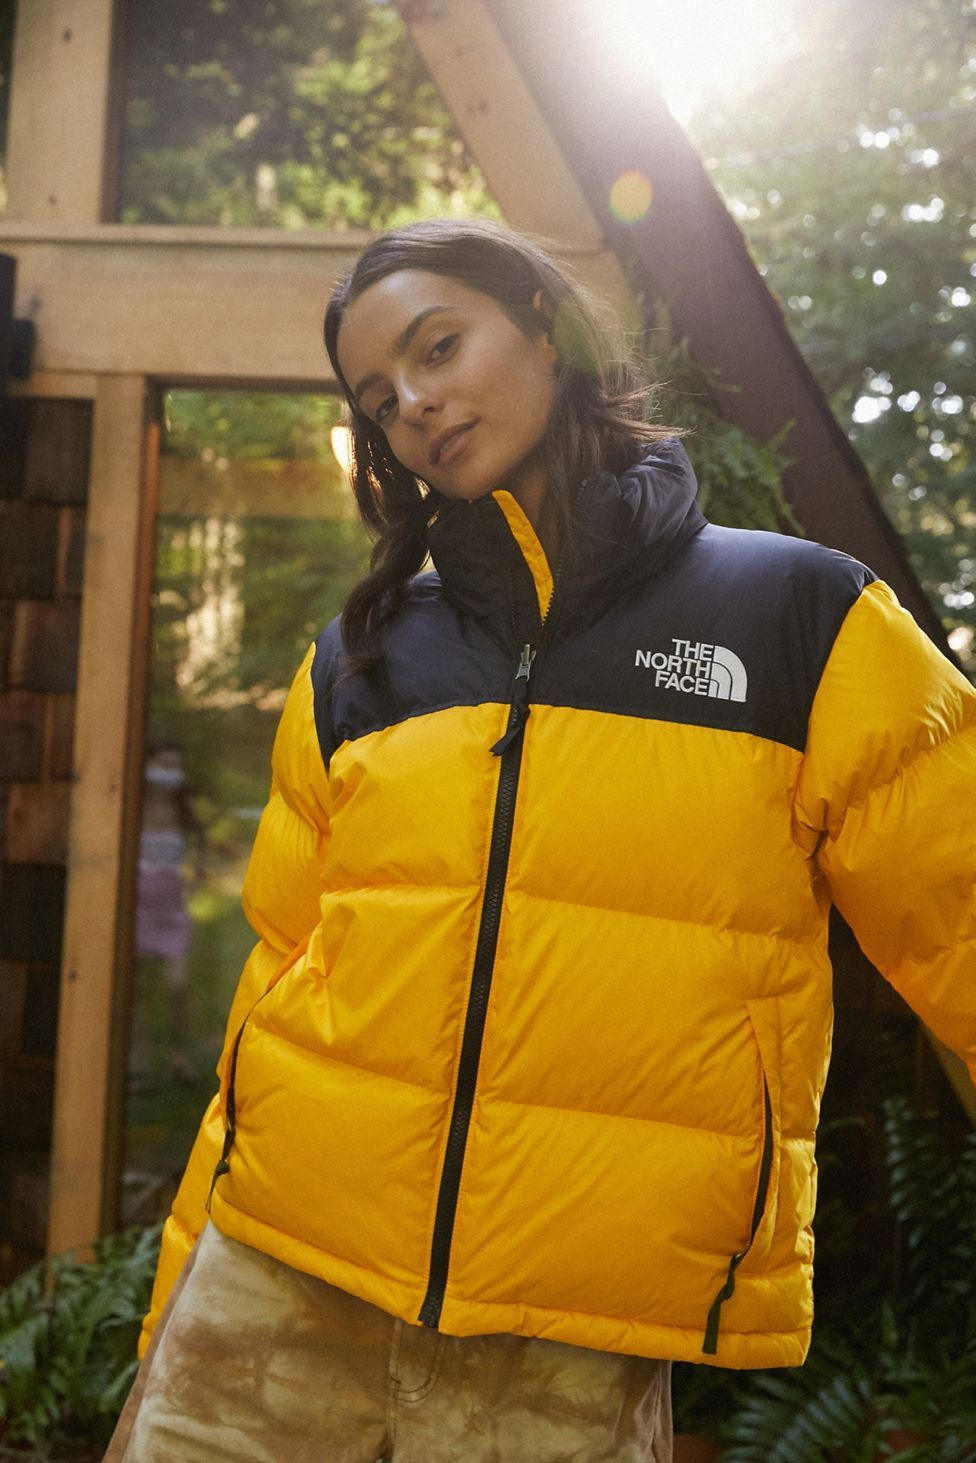 The North Face 1996 Retro Nuptse Puffer Jacket Puffer Jacket Women The North Face 1996 Retro Nuptse The North Face [ 1463 x 976 Pixel ]